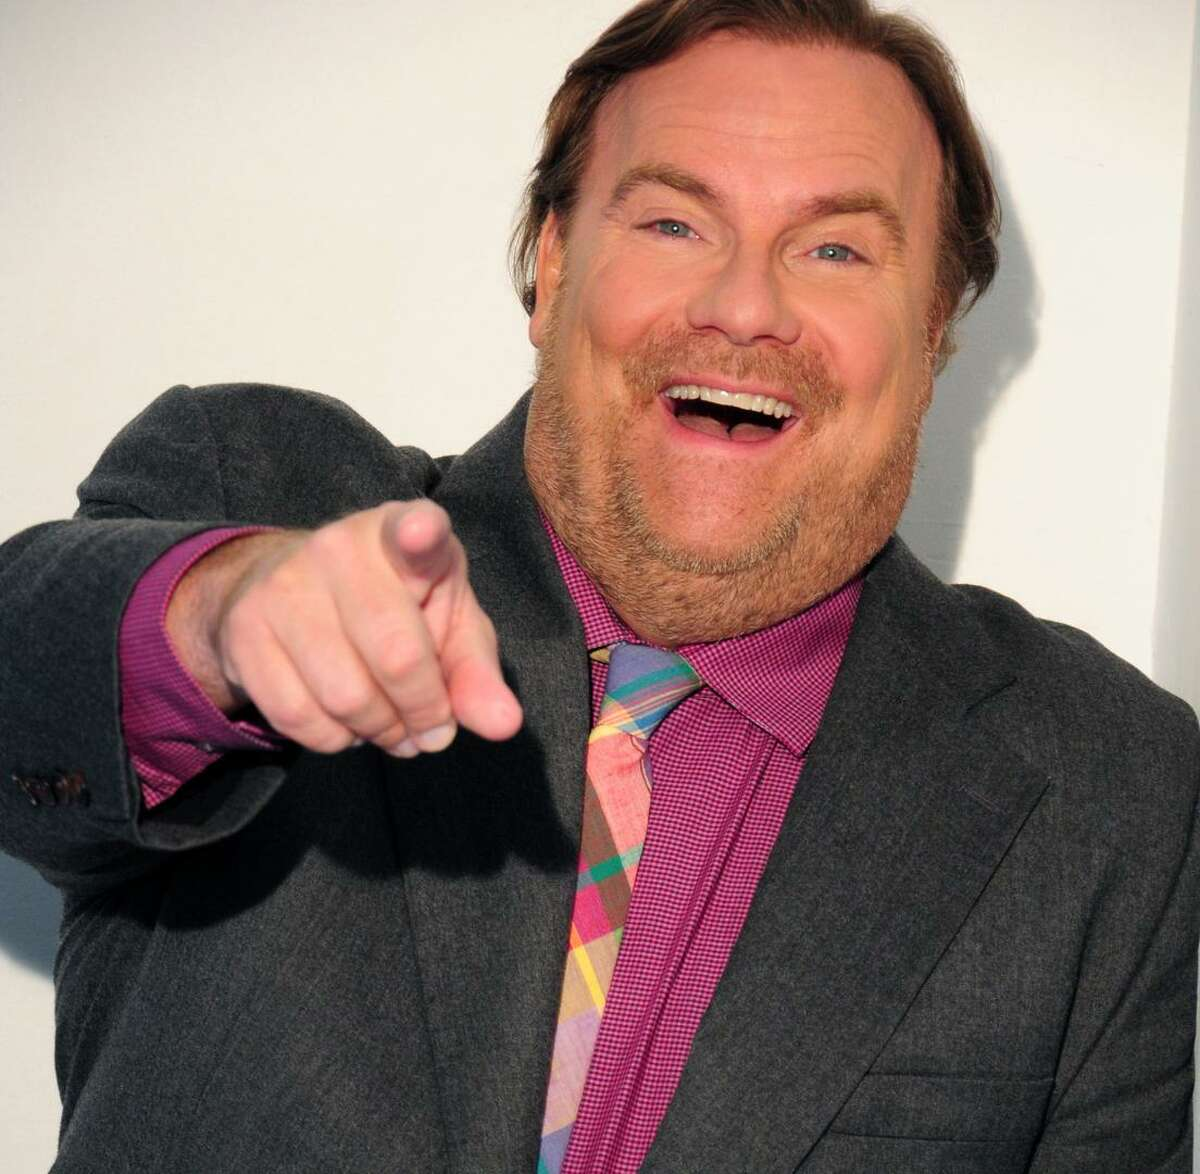 Kevin Farley will perform at The Treehouse Comedy Club in Westport on Feb. 9.